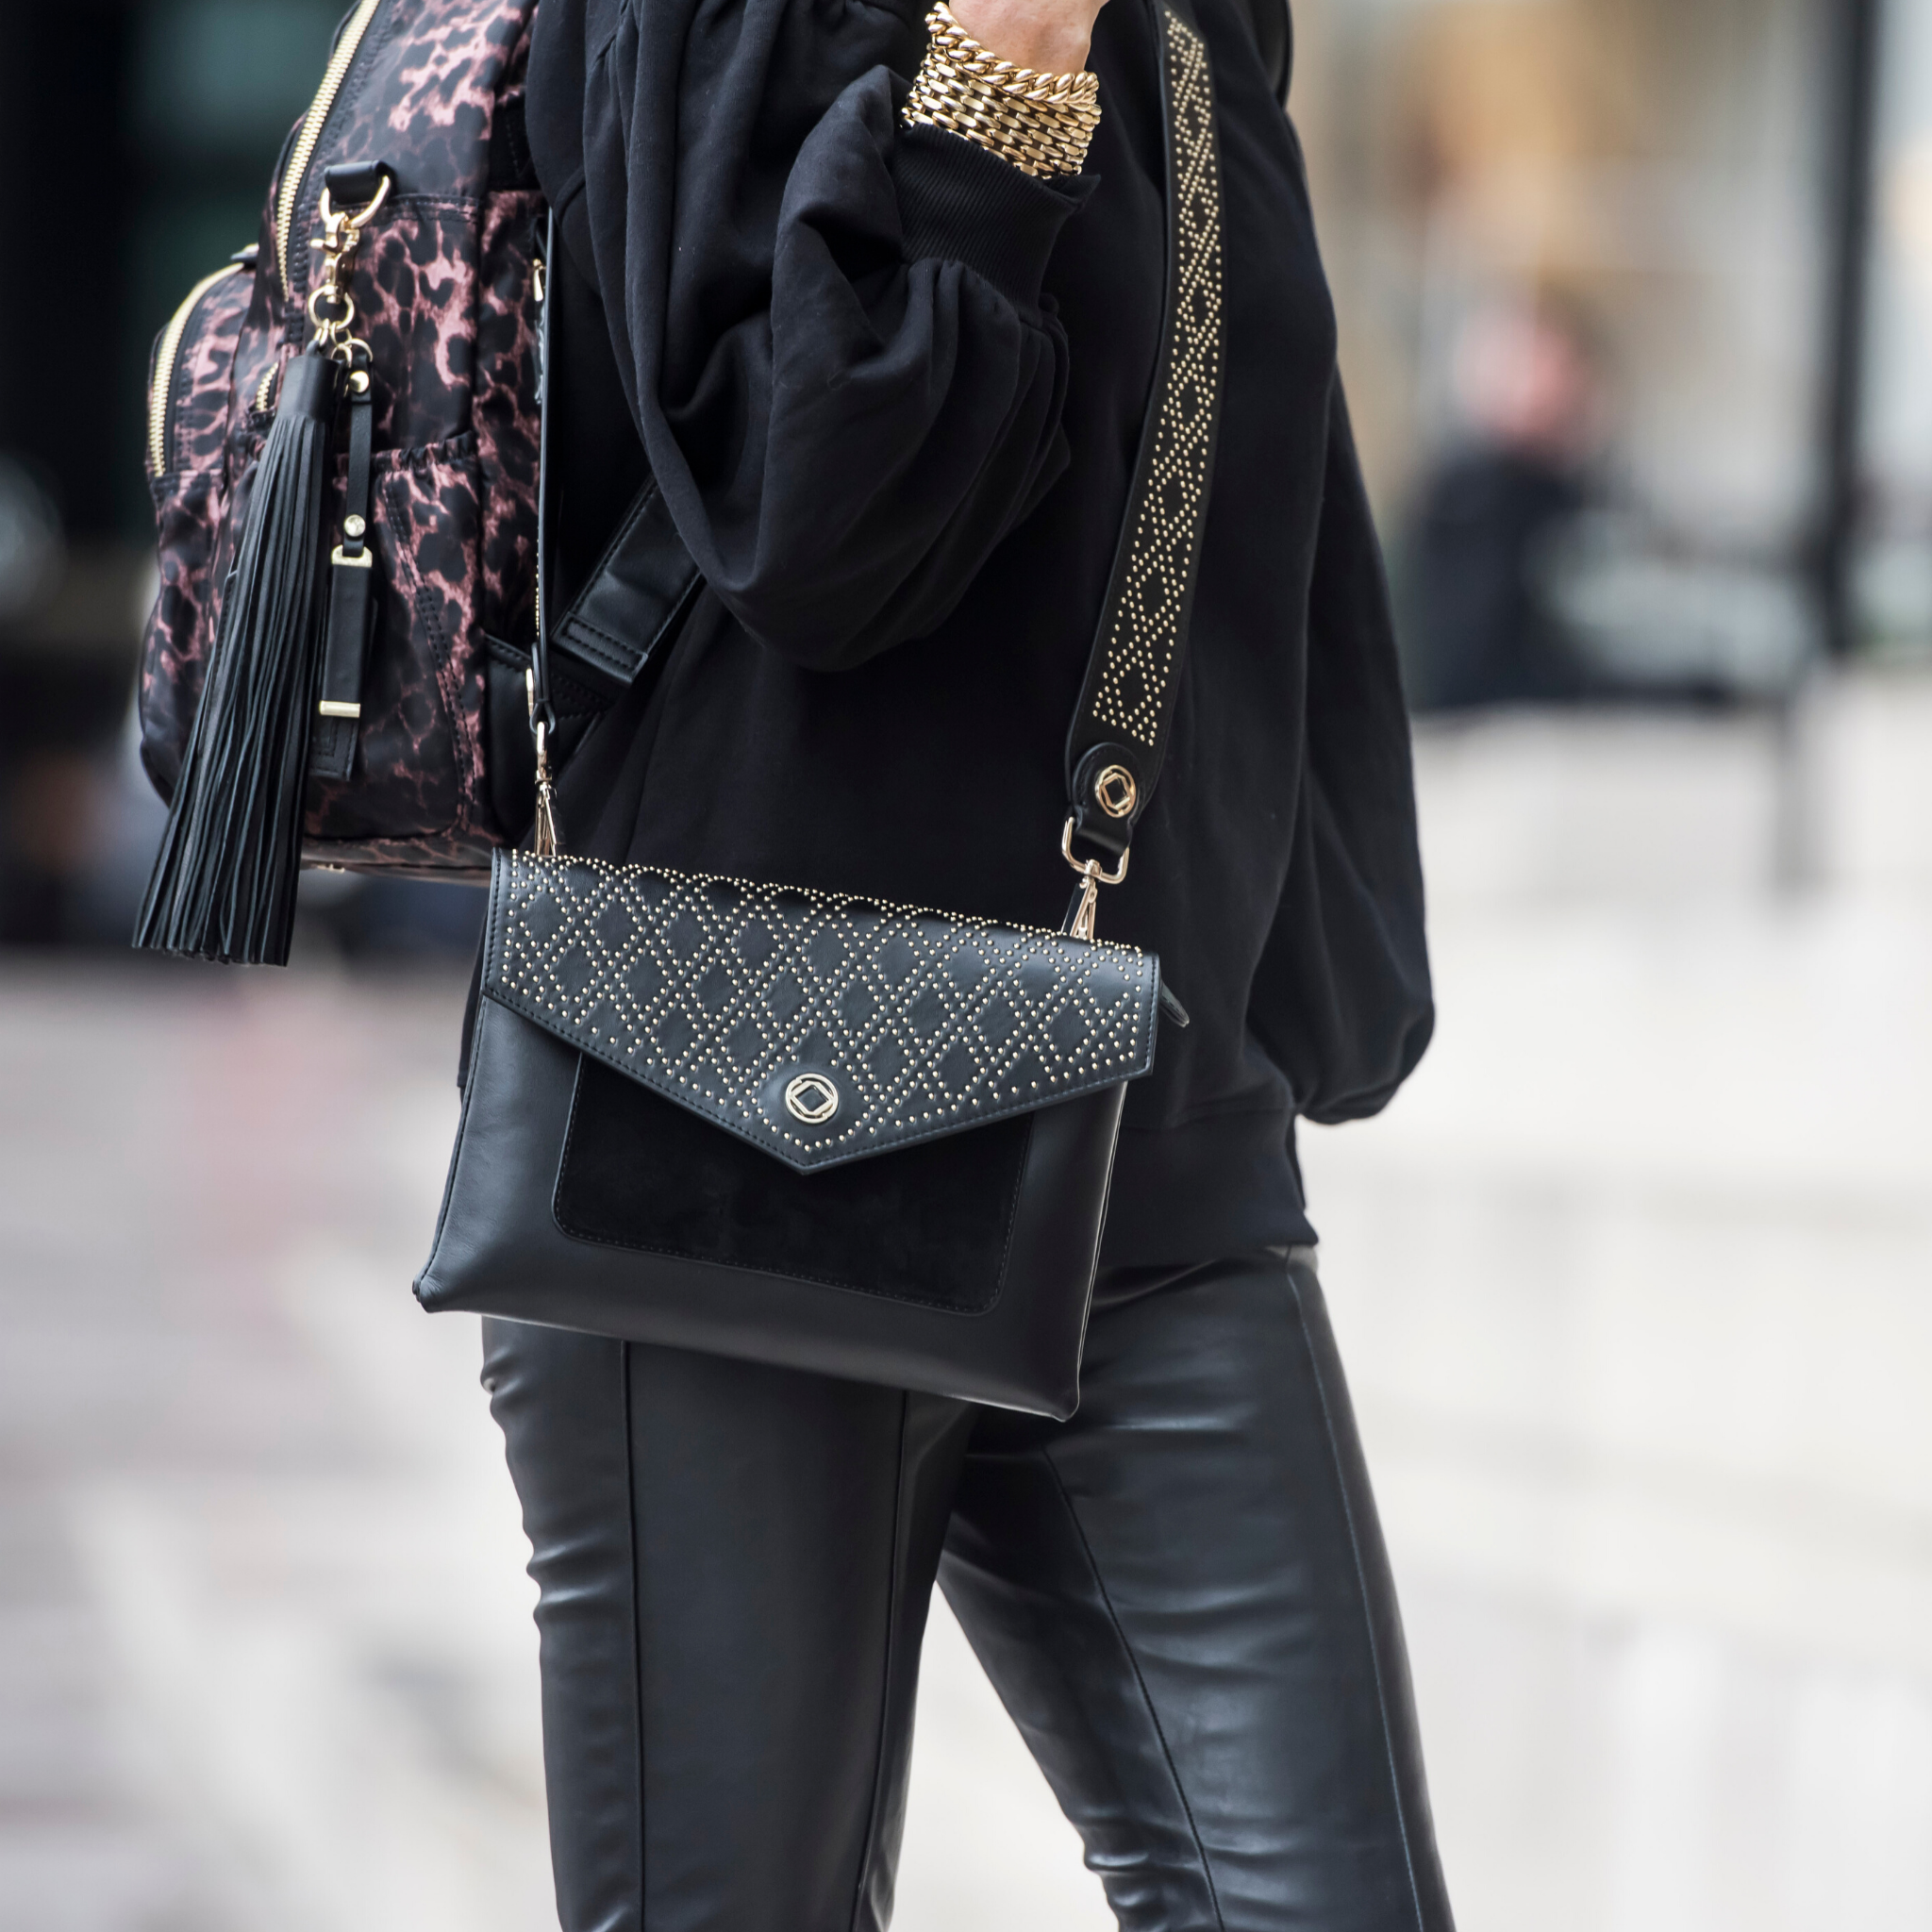 Black studded leather clutch easily carried underarm or across your body with a cross body strap attach to it. Image shows woman carrying purse as a handbag.